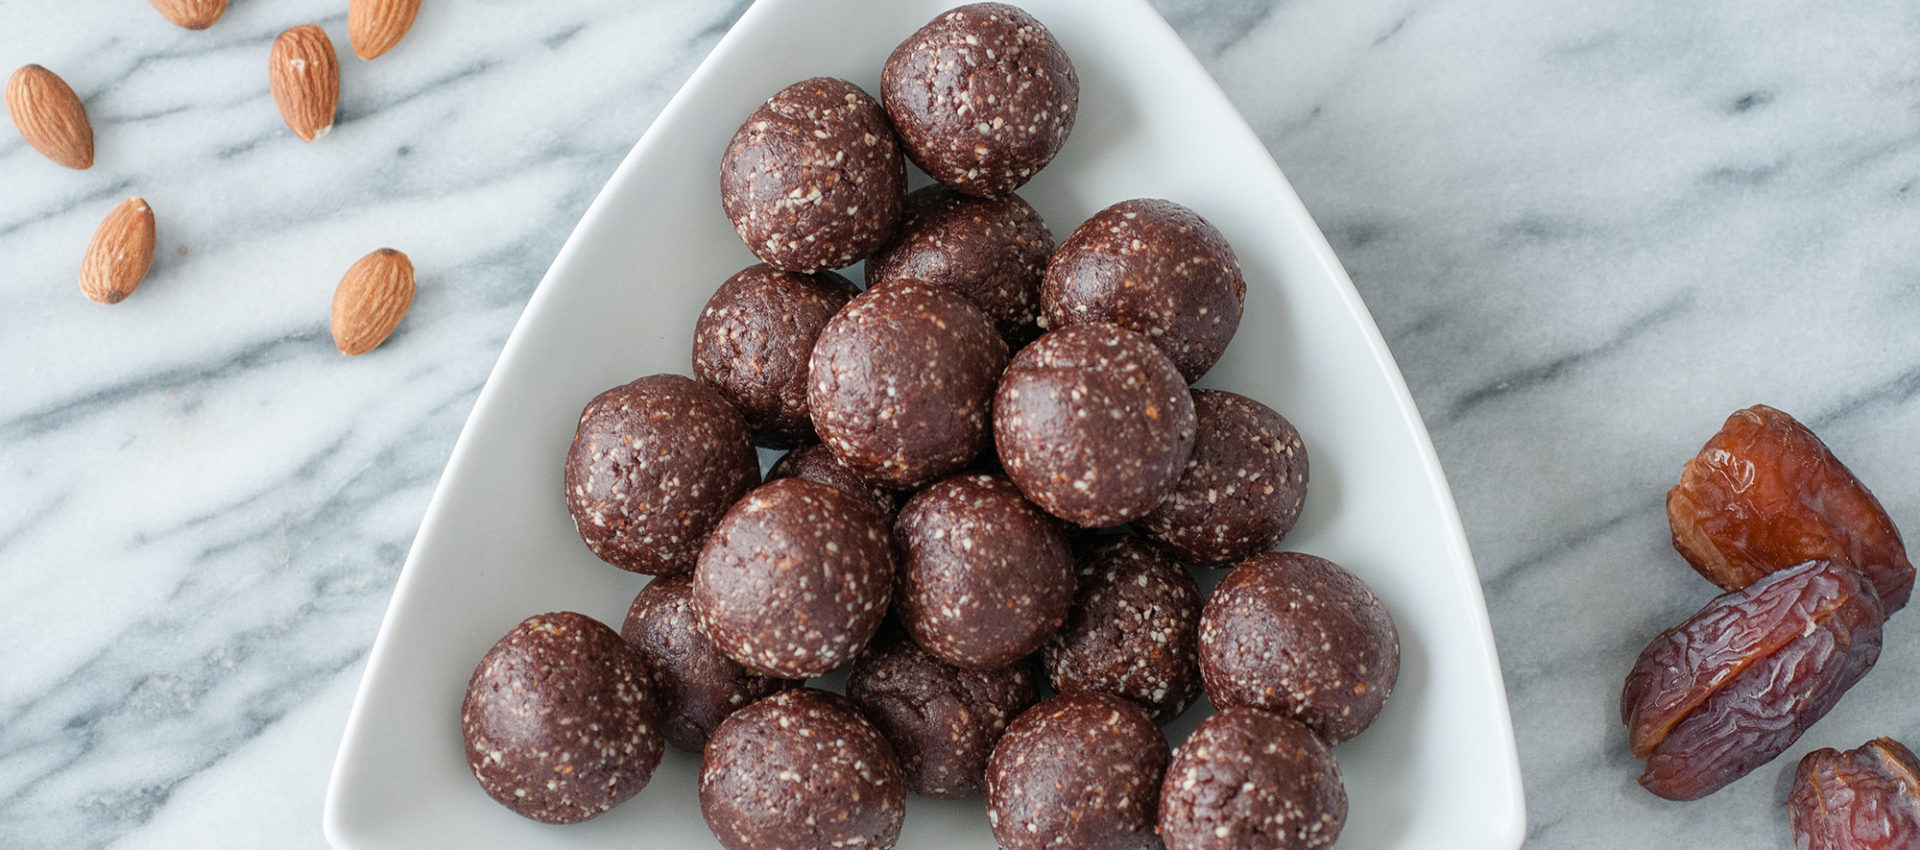 chocolate almond gluten free dairy free energy ball recipe